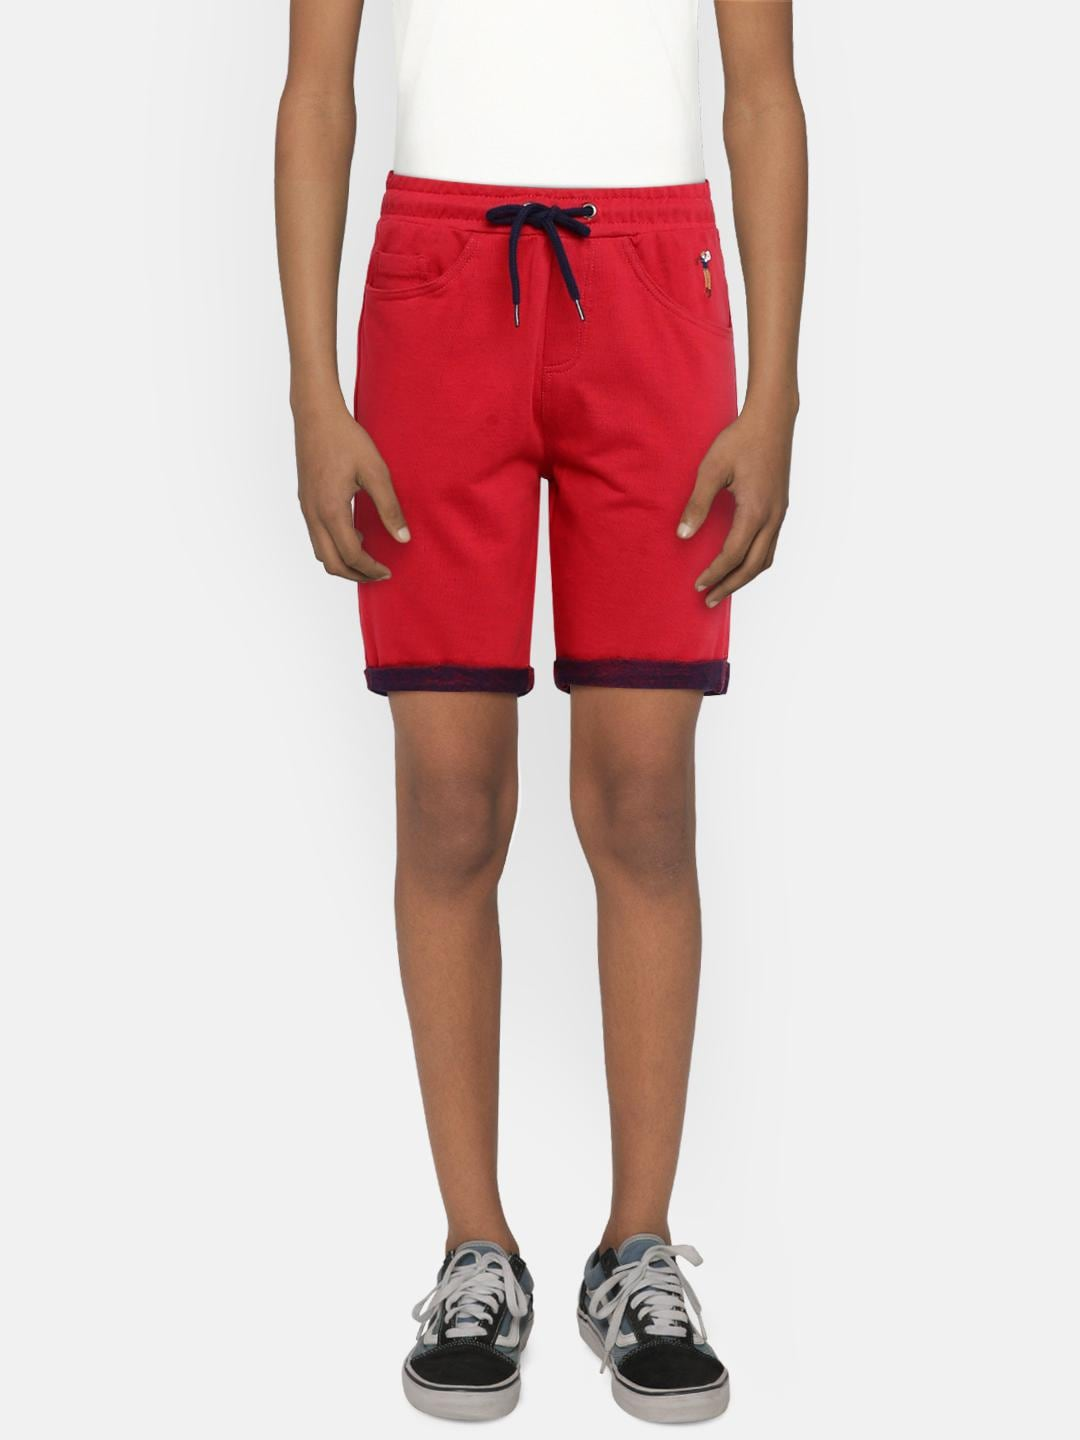 49291ebcb4 Shorts | Buy Shorts Online in India at Best Price